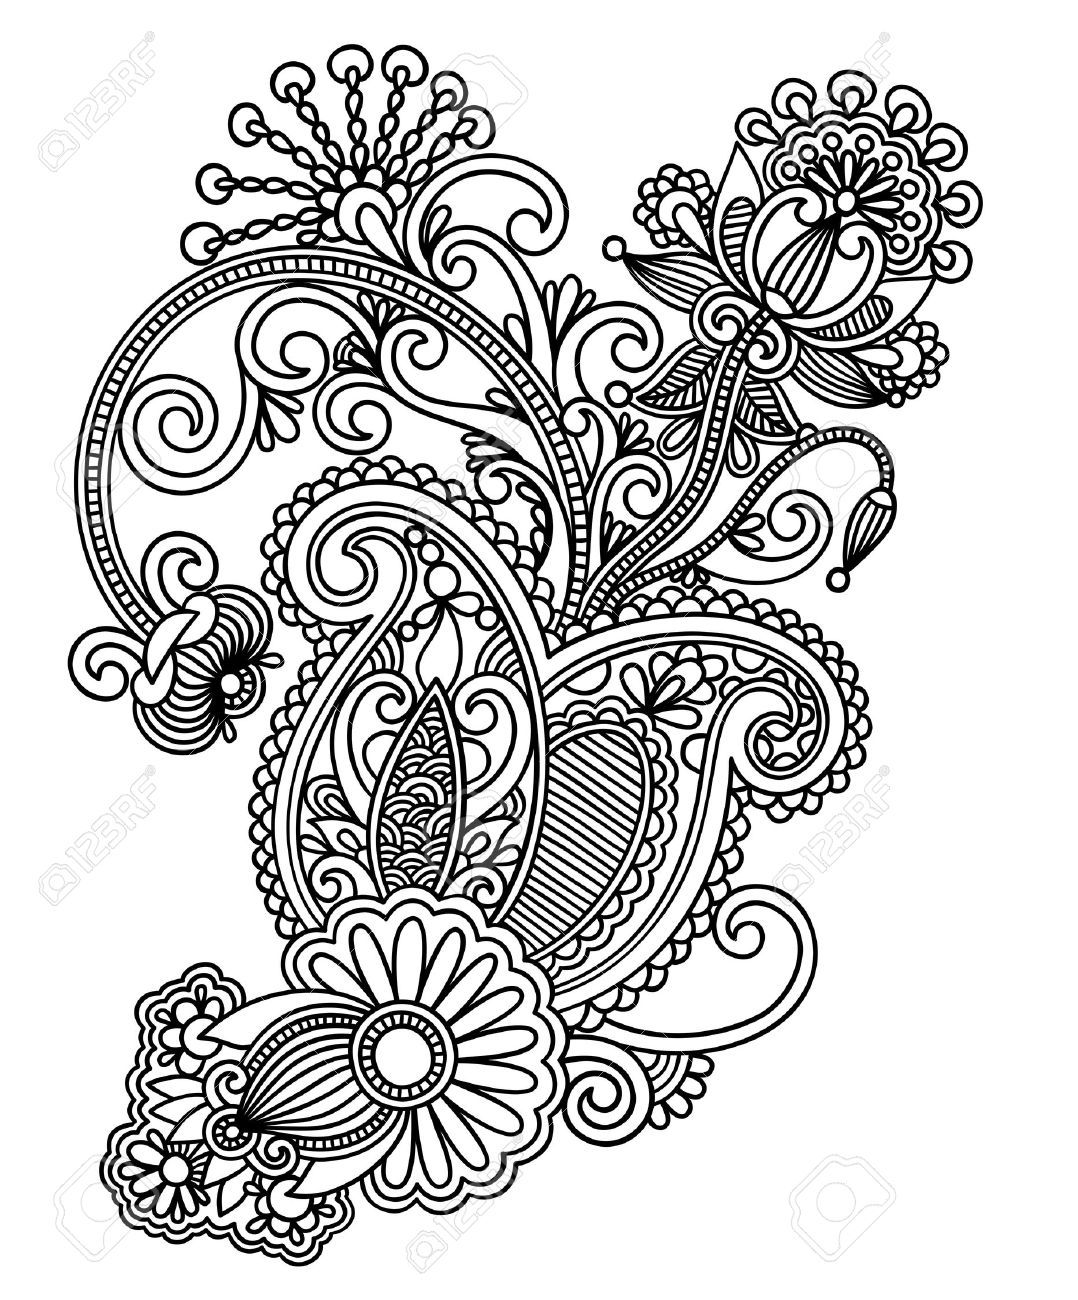 Line Drawing Flower Designs : Aztec floral design google search tattoo ideas